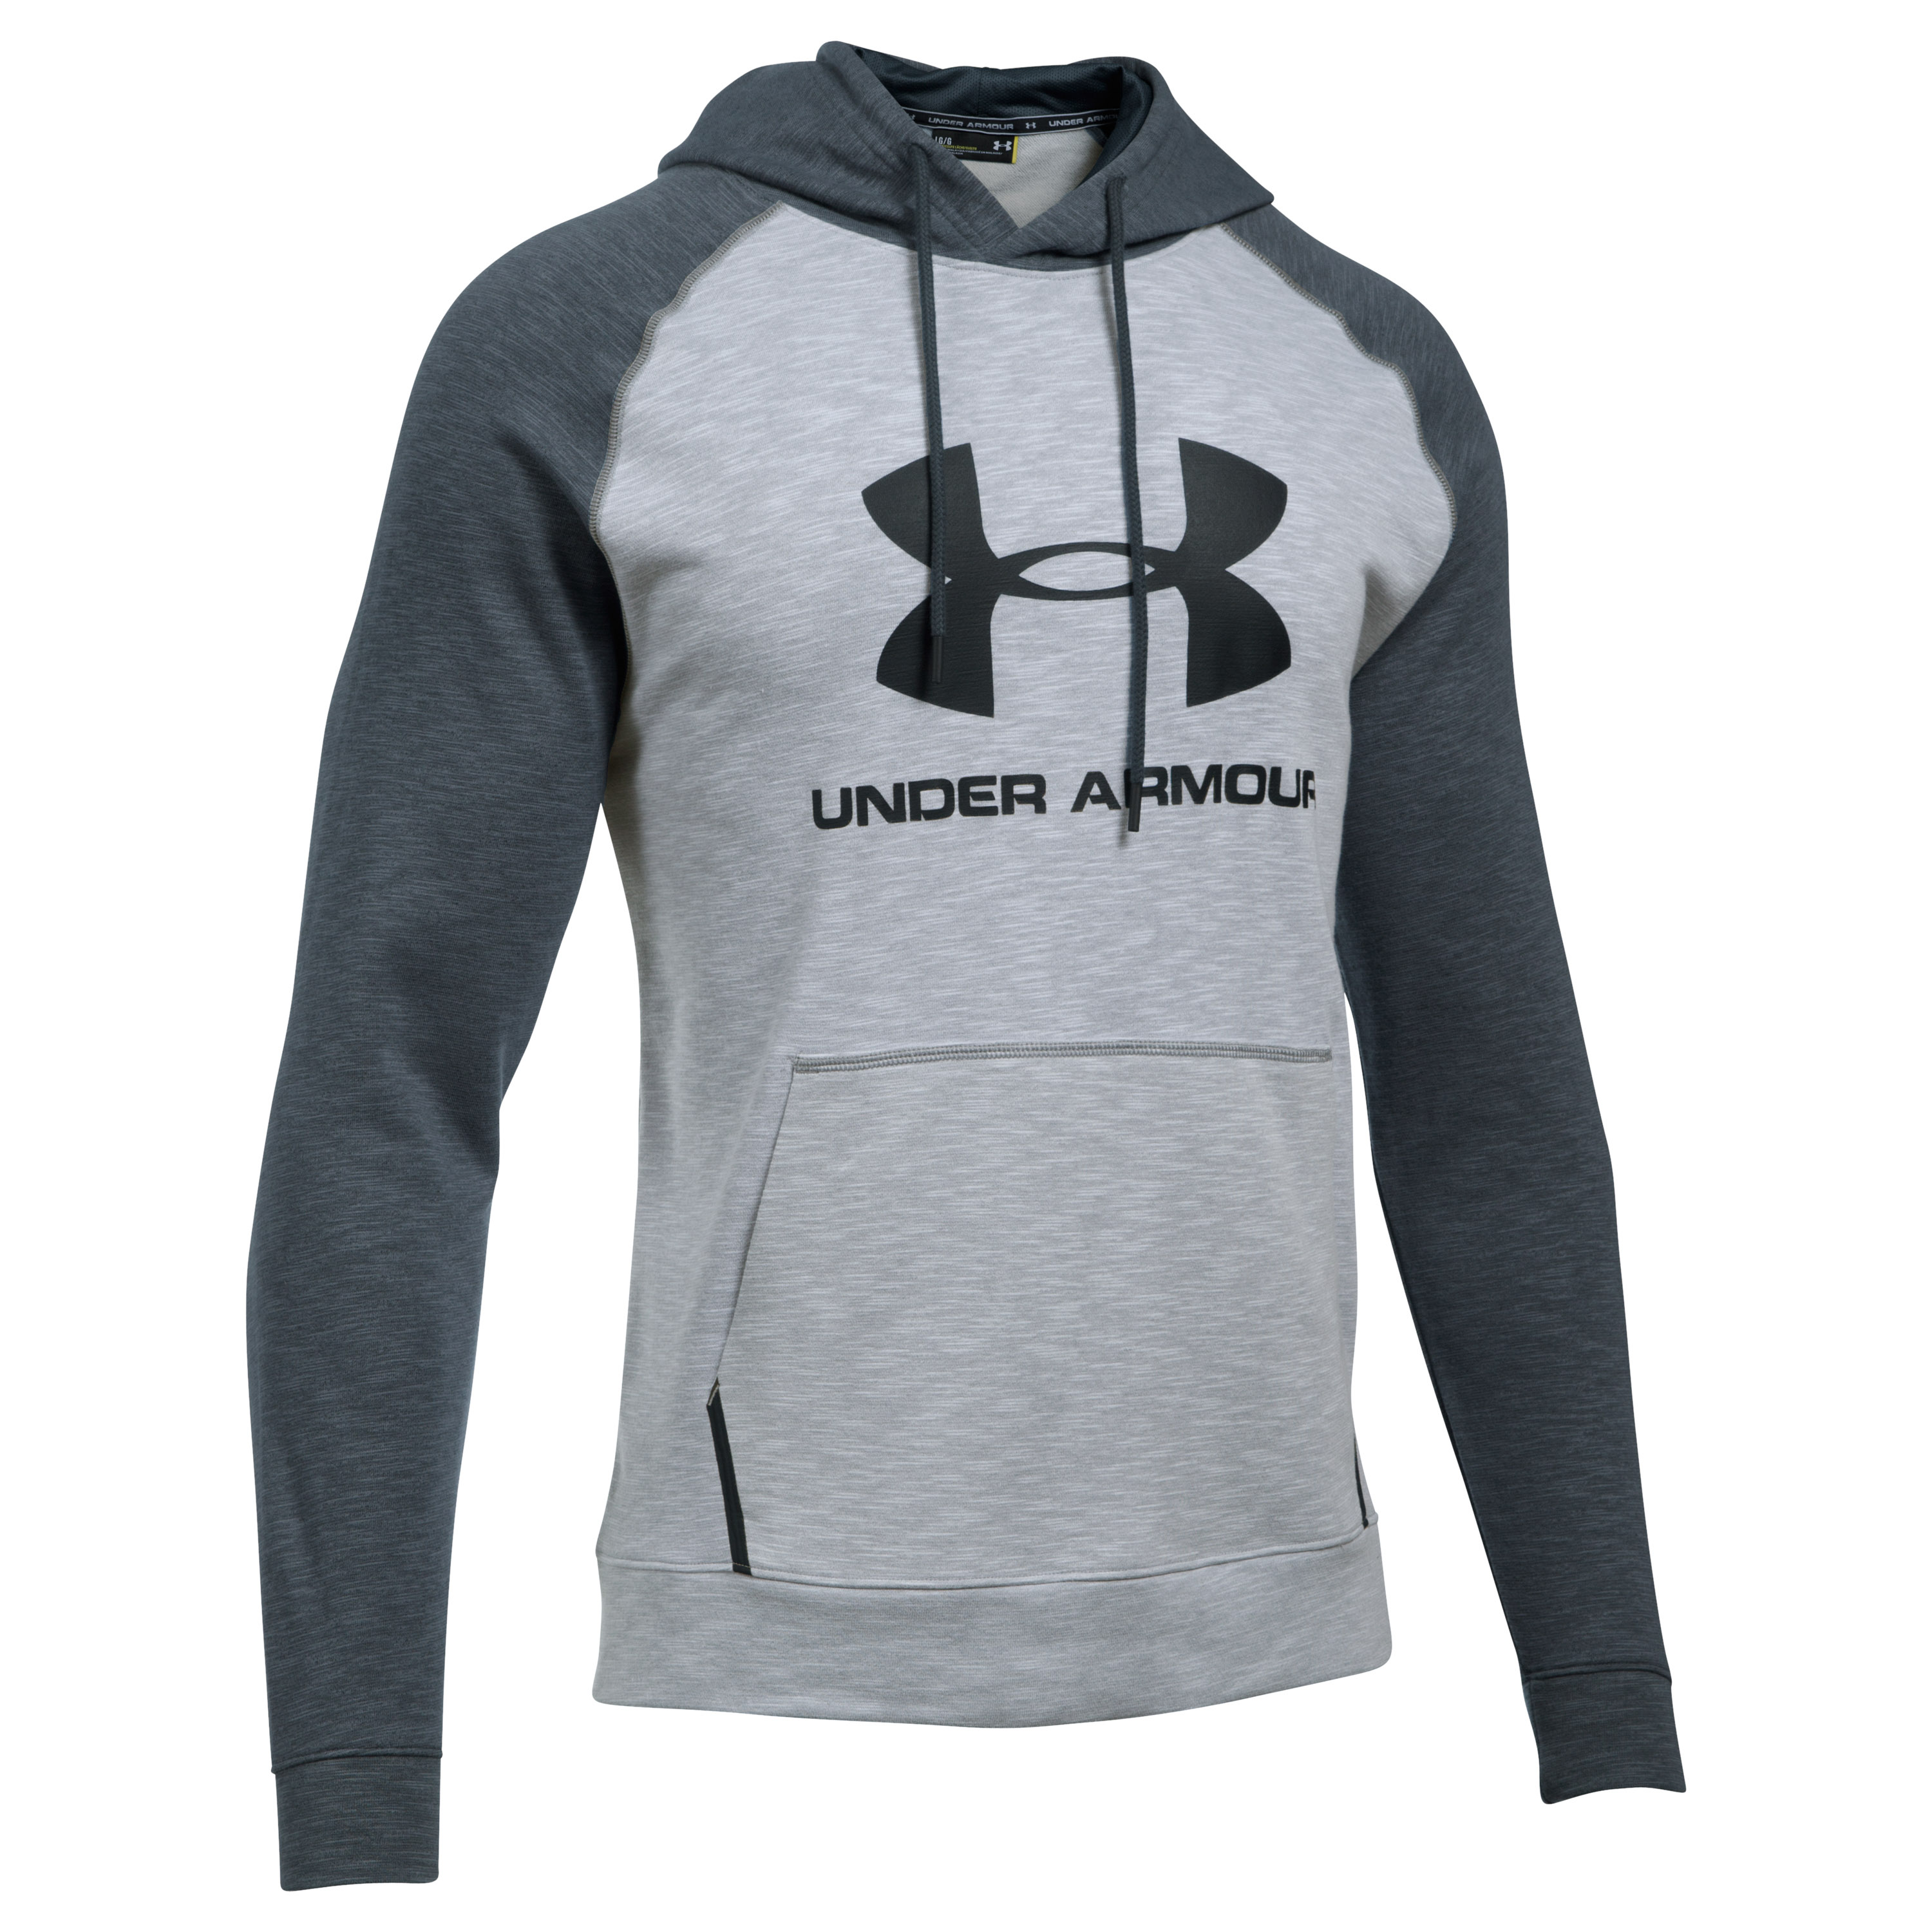 Under Armour Fitness Pullover Hoody Sportstyle Triblend hellgrau